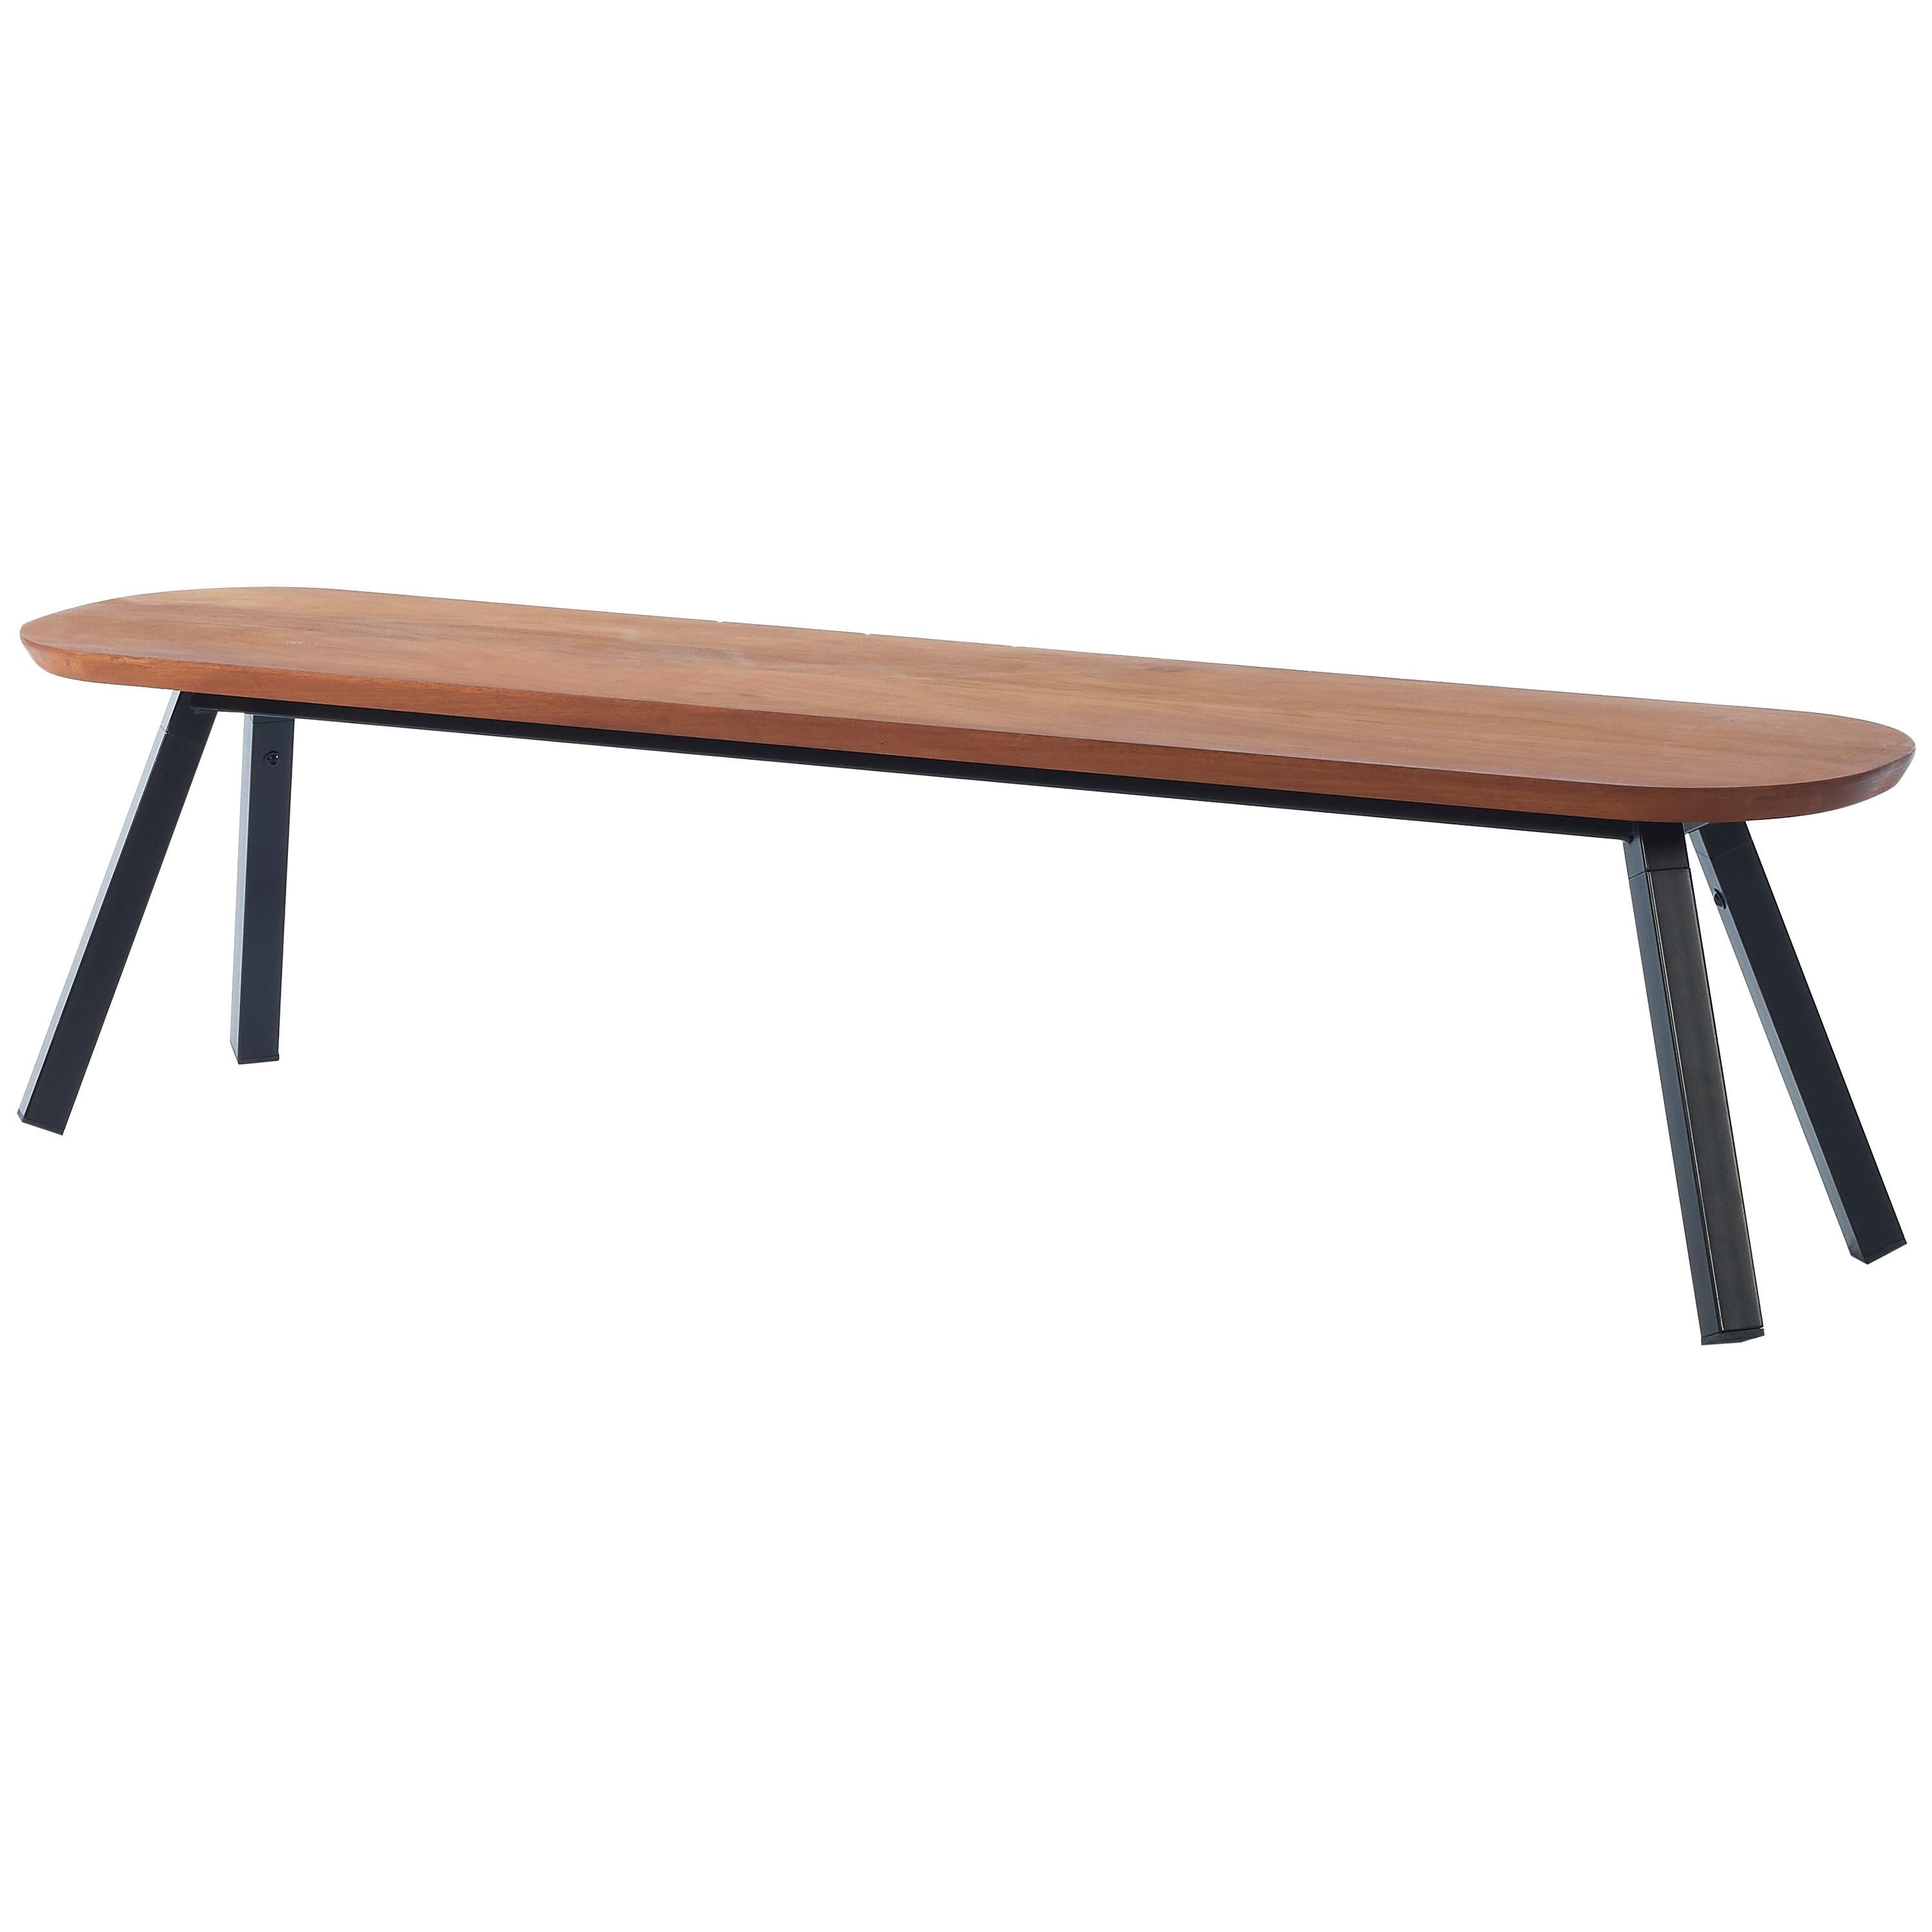 RS Barcelona You and Me 180 Bench in Iroko with Black Legs by A.P.O.